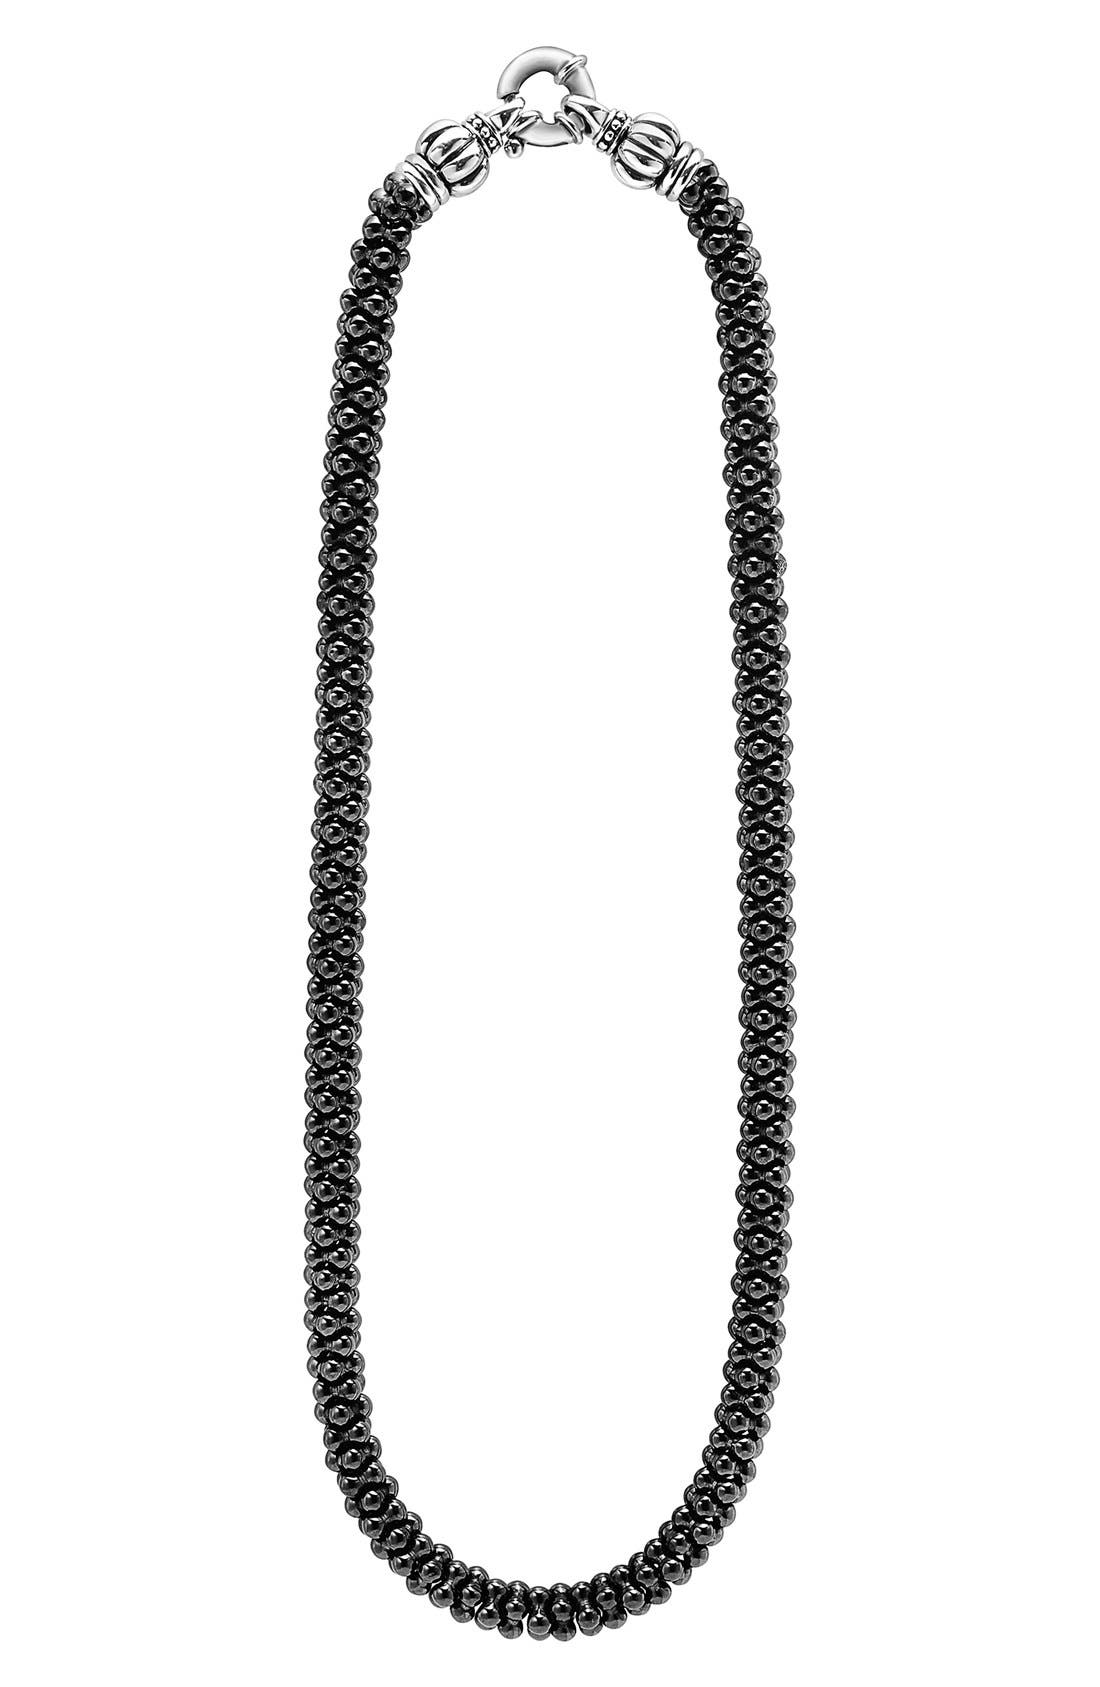 LAGOS Black Caviar 7mm Beaded Necklace